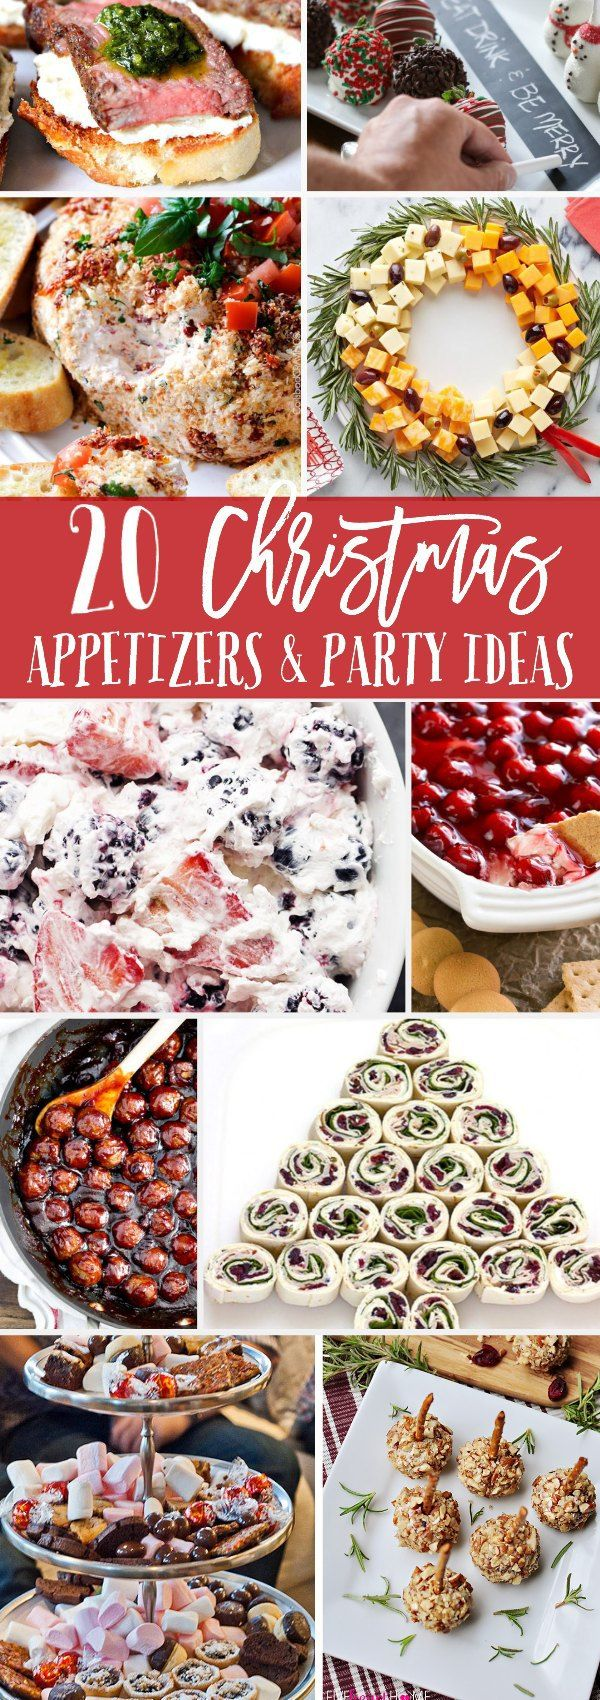 Best 25 Easy christmas appetizers ideas on Pinterest  Christmas